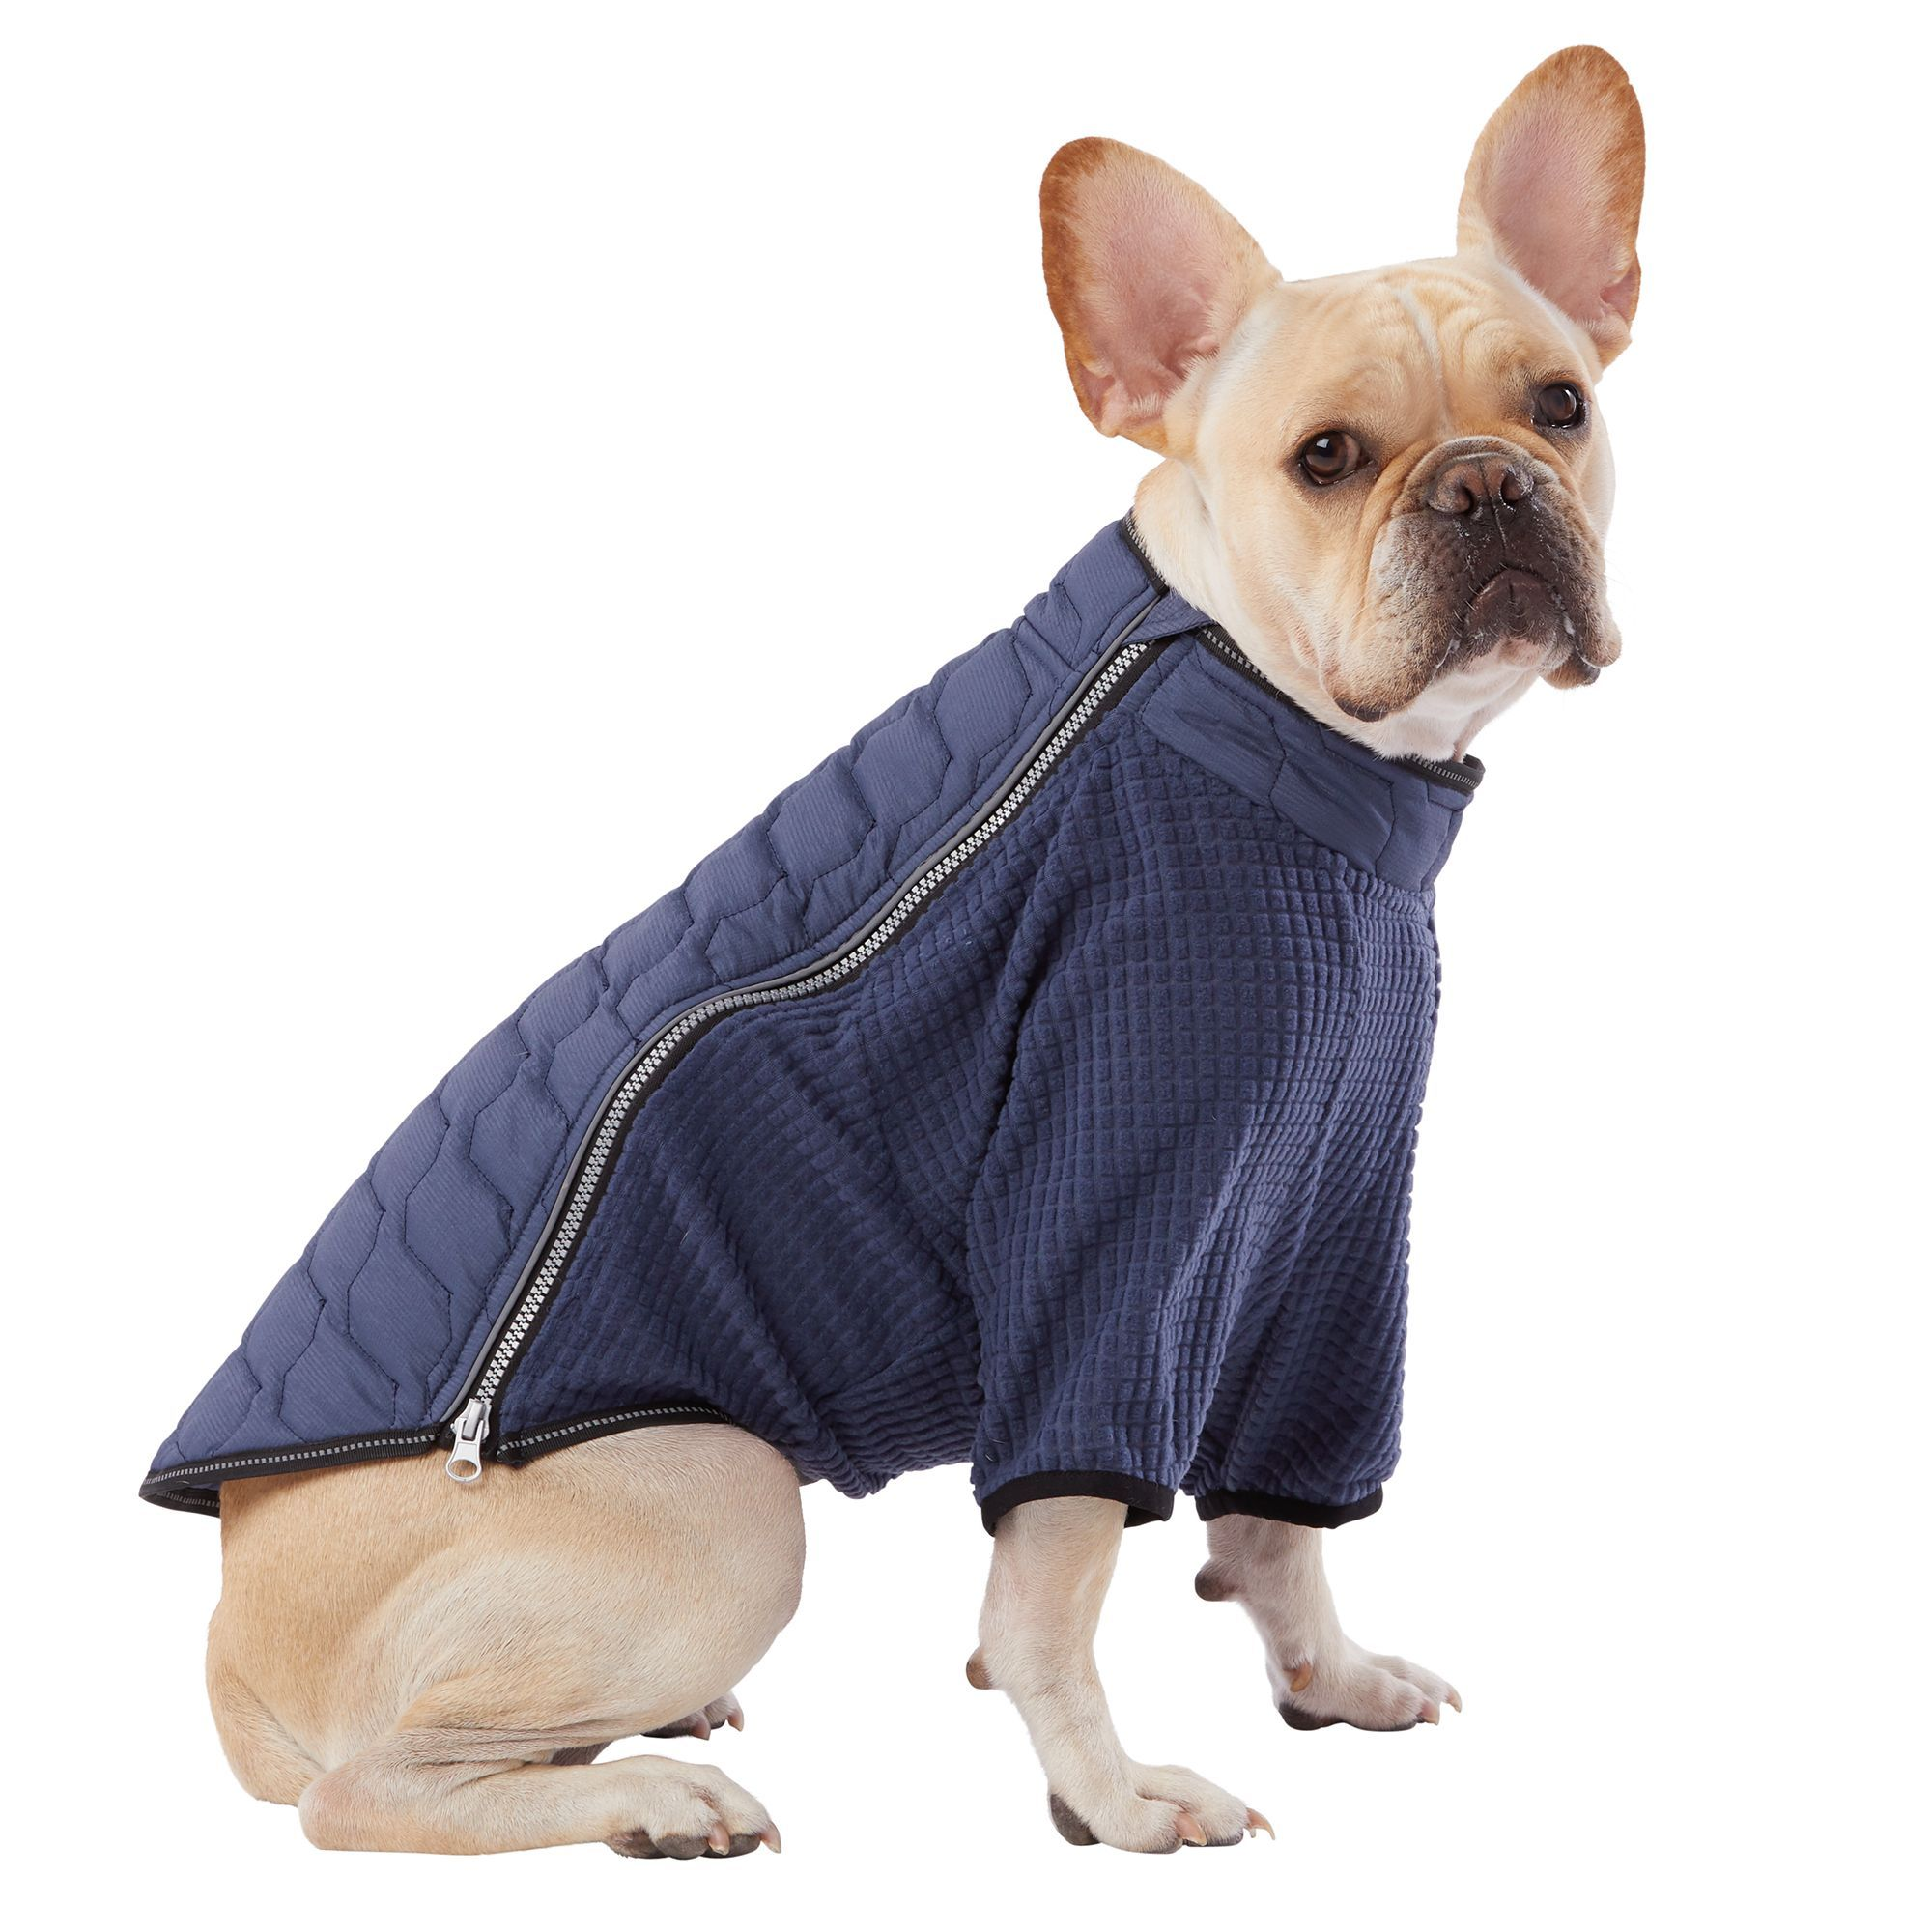 Top Paw Packable Pet Coat size 2X Small, black/blue/grey